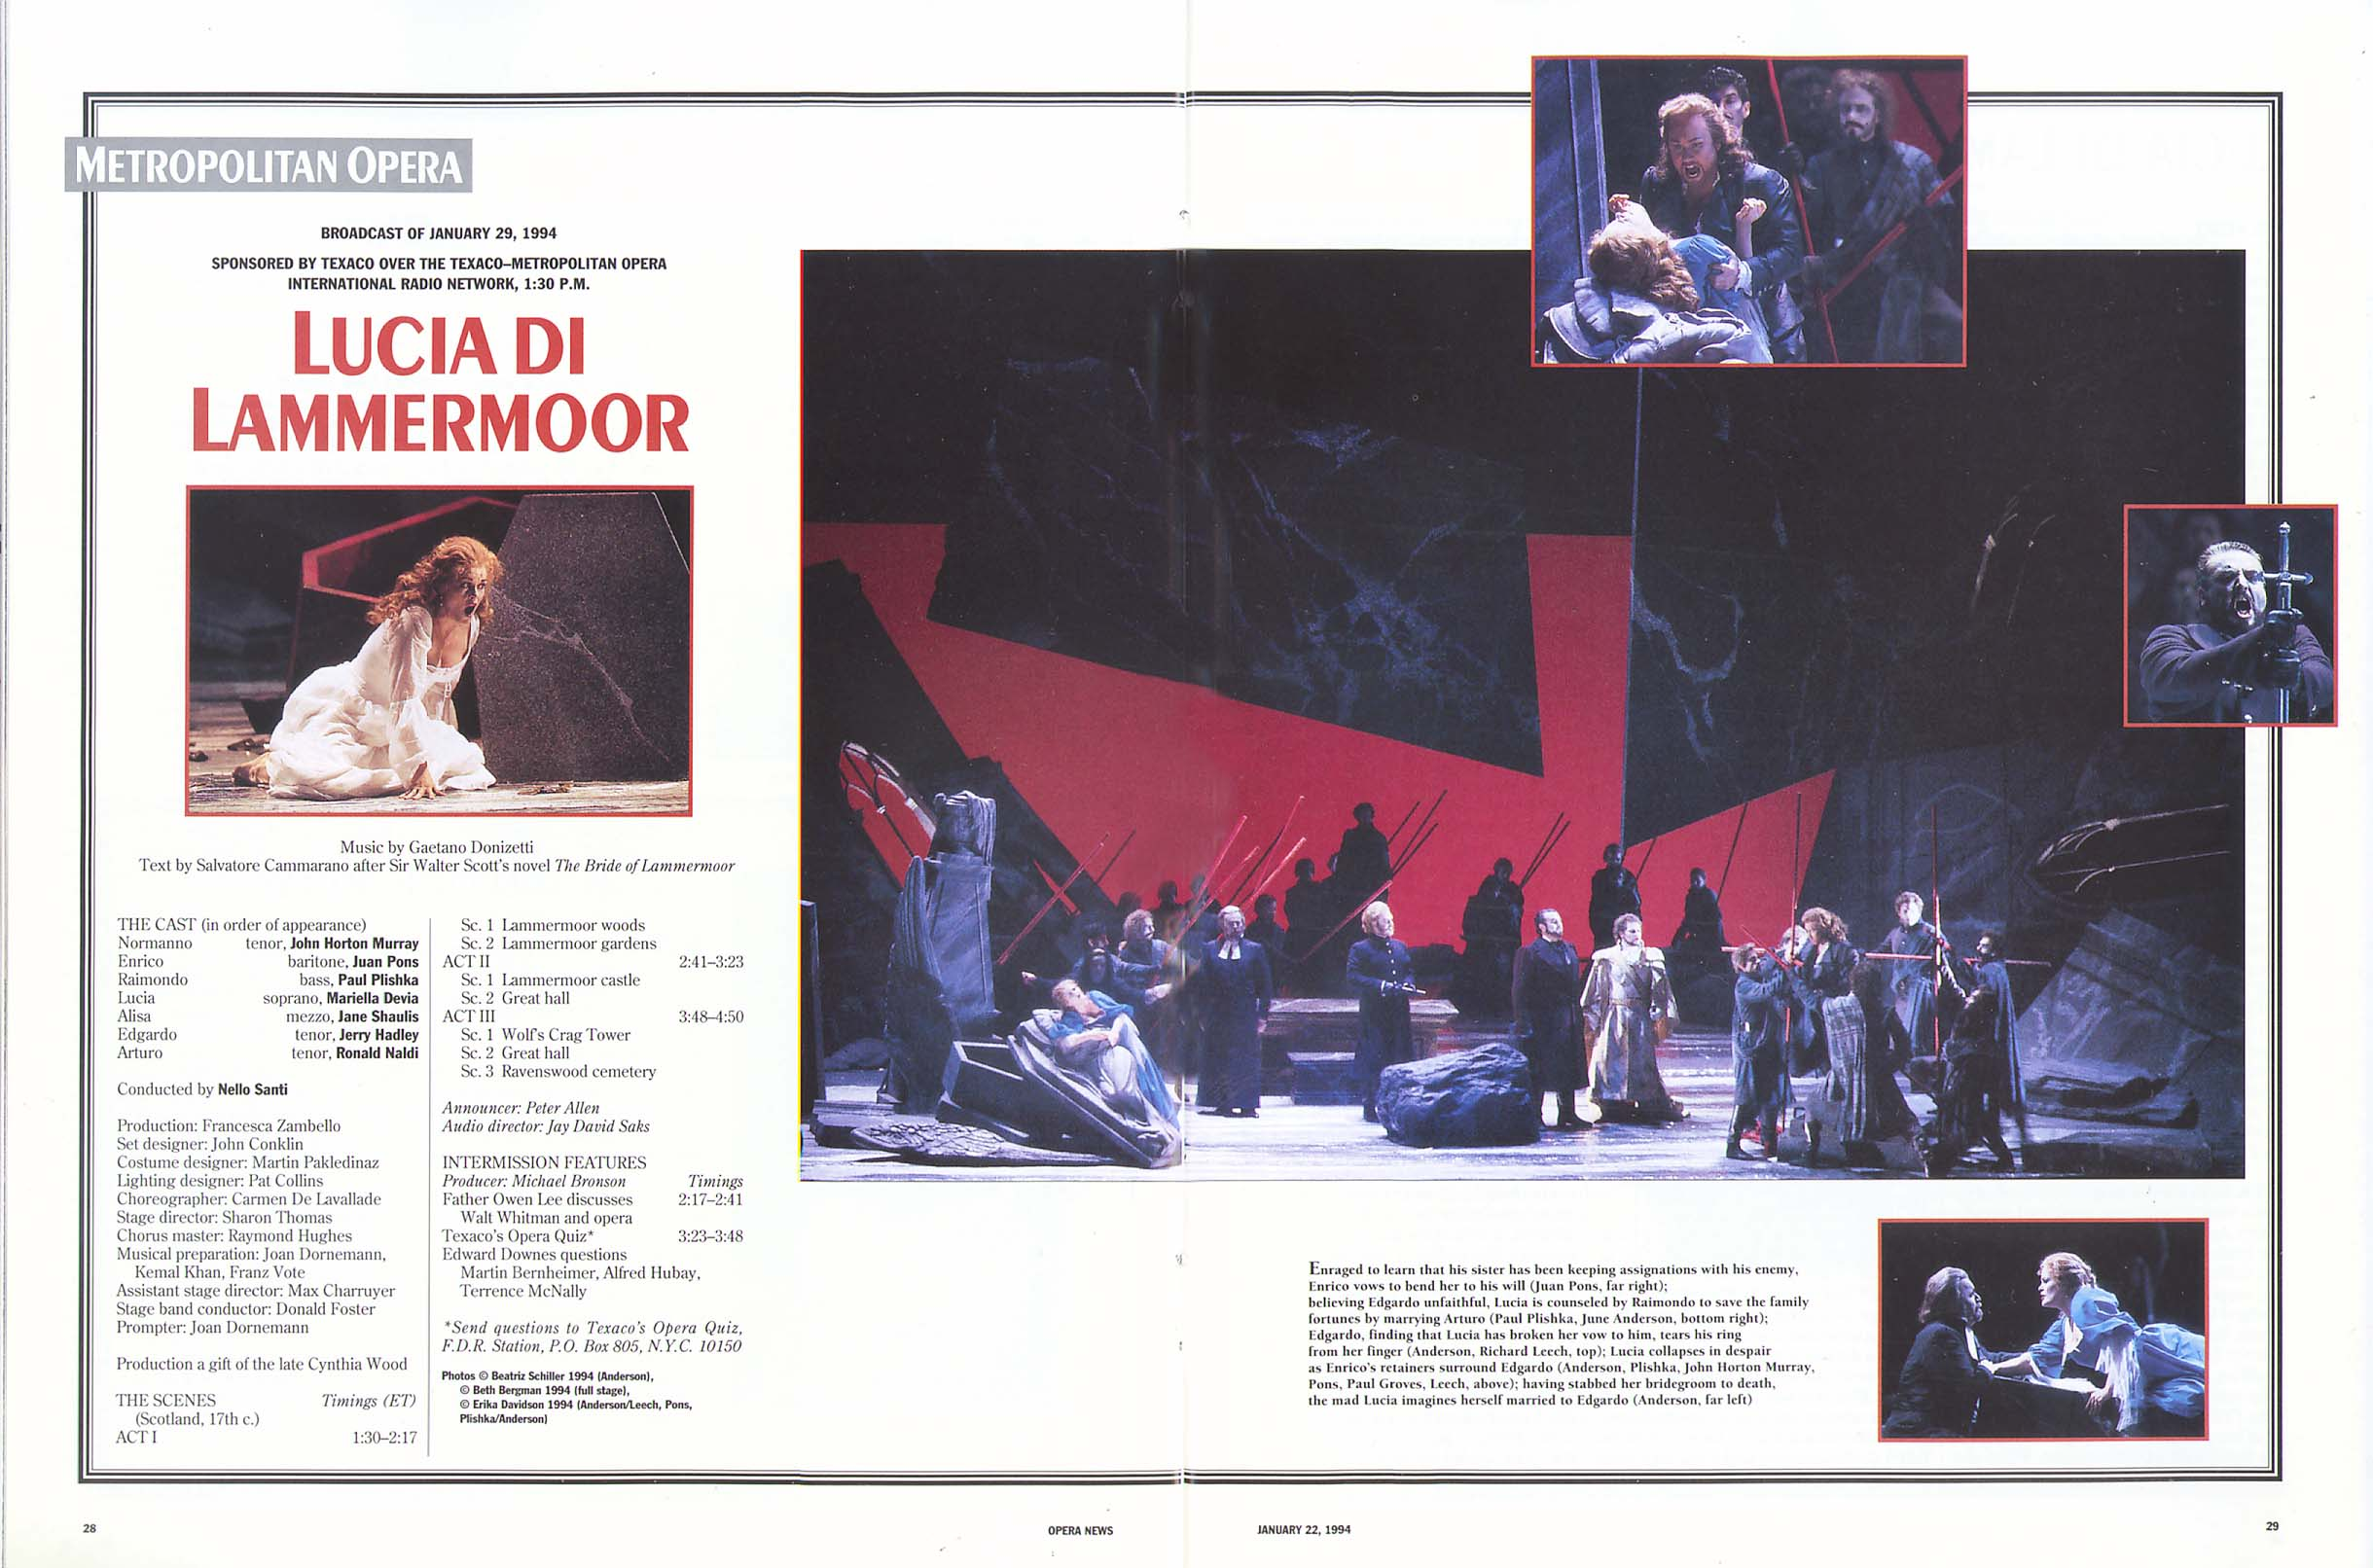 LUCIA DI LAMMERMOOR @  |  |